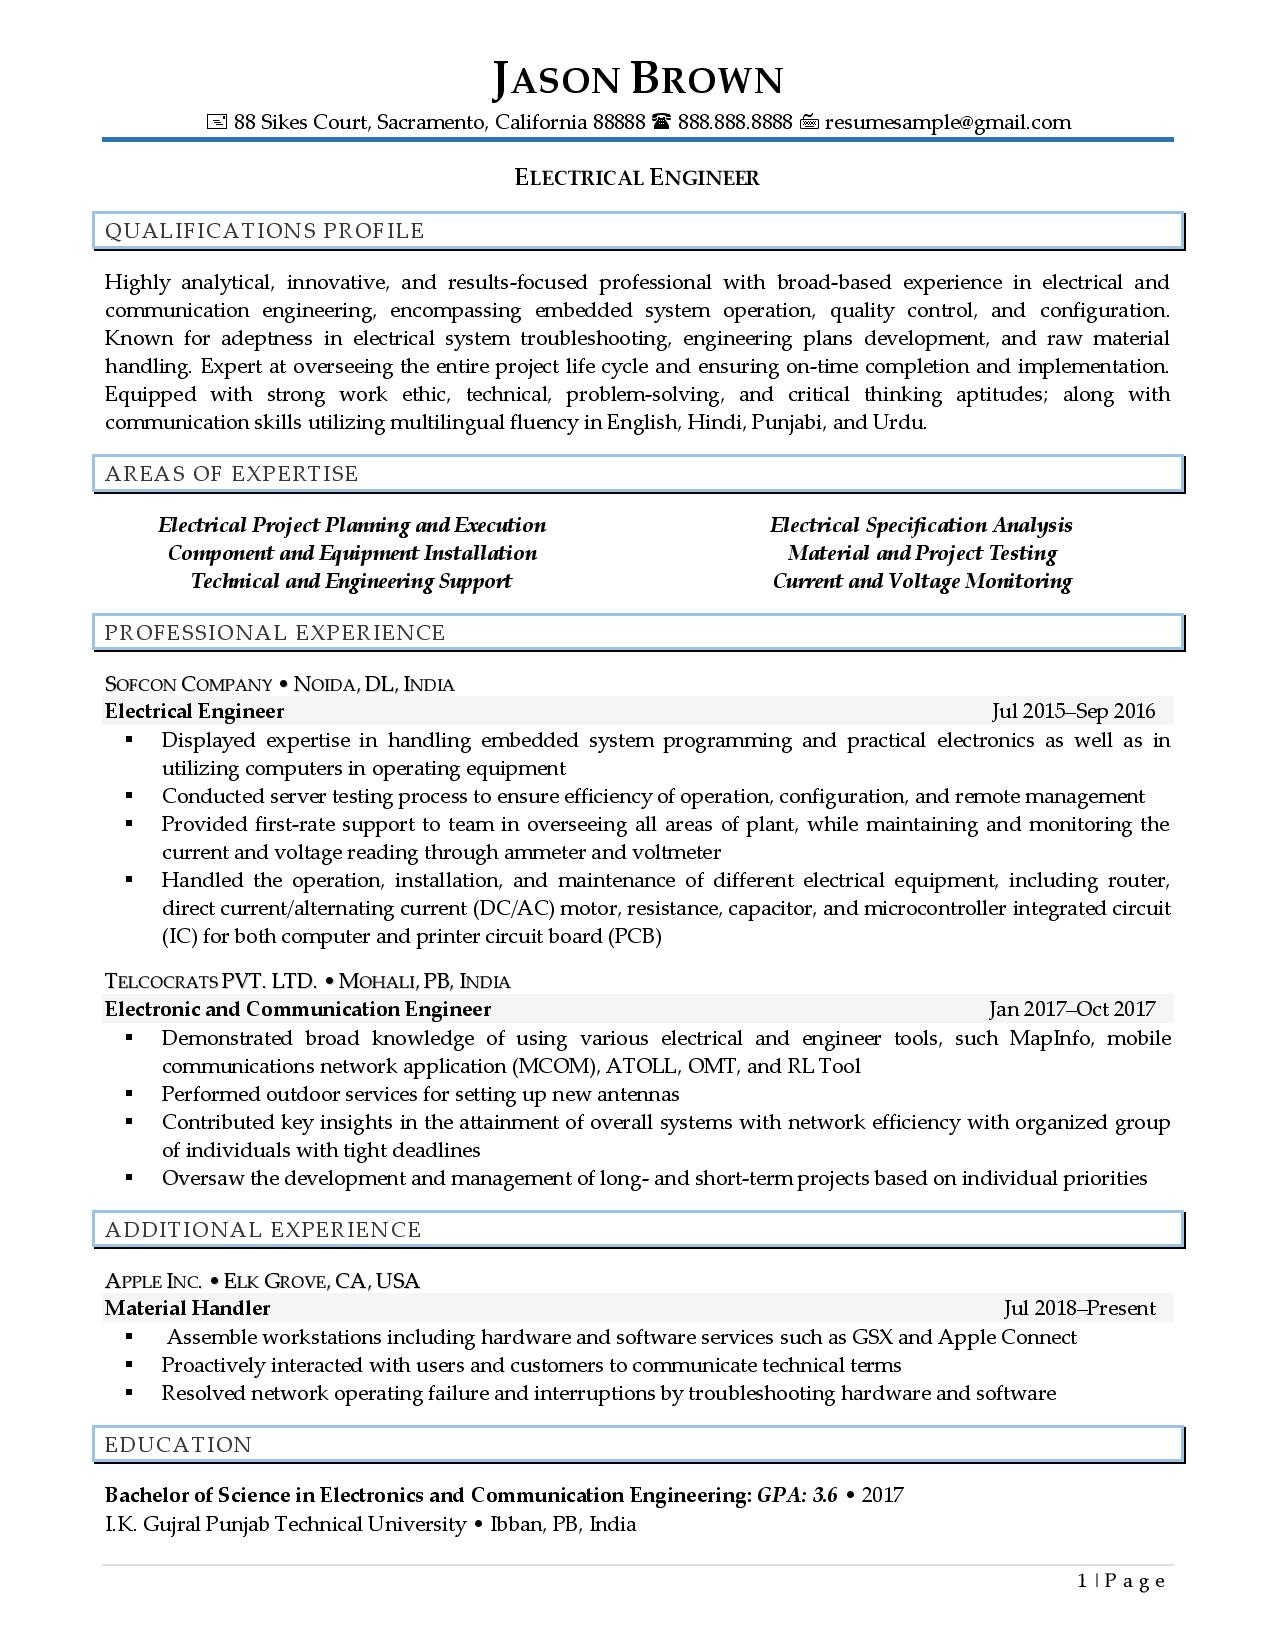 Optimized electrical engineer resume examples page 1